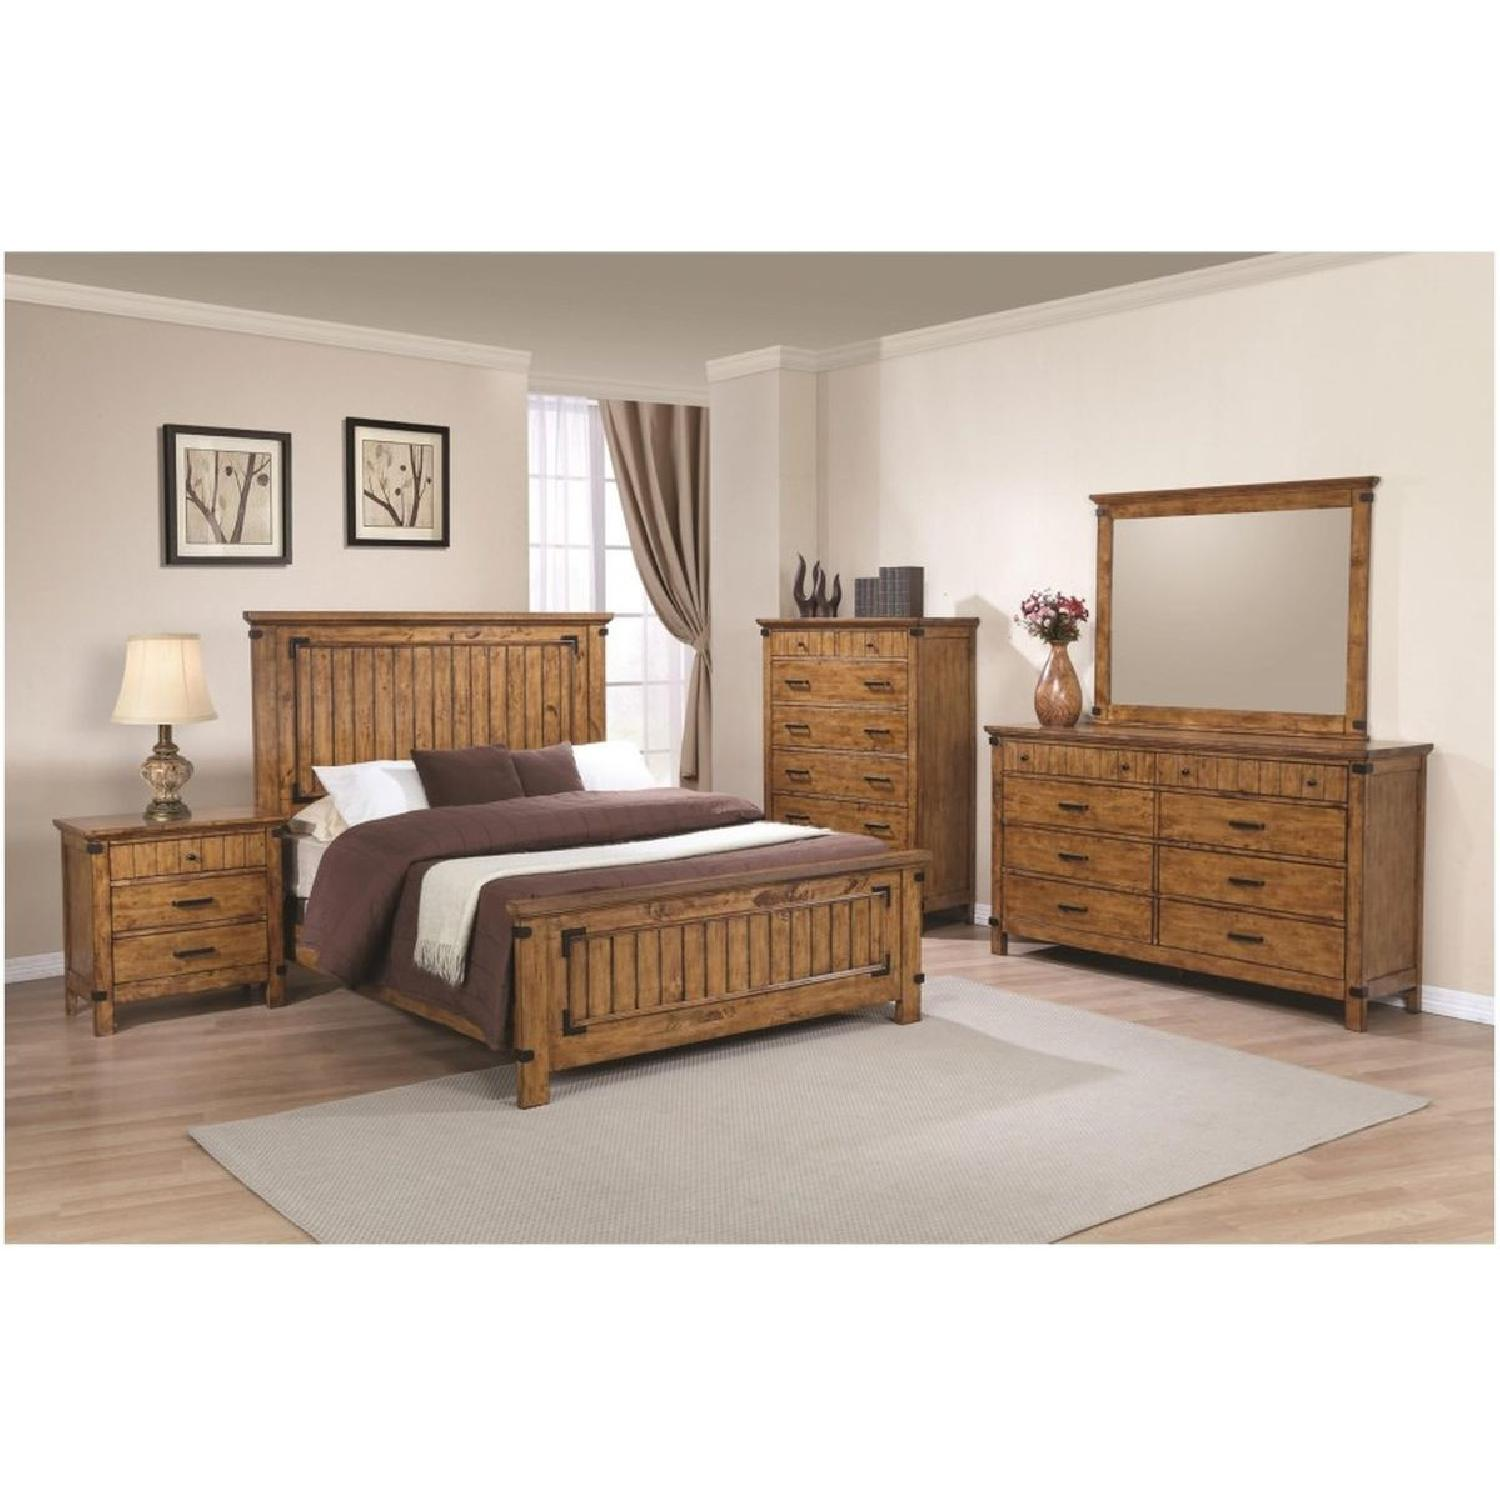 Rustic Style Twin Bed in Warm Honey Brown Finish - image-1